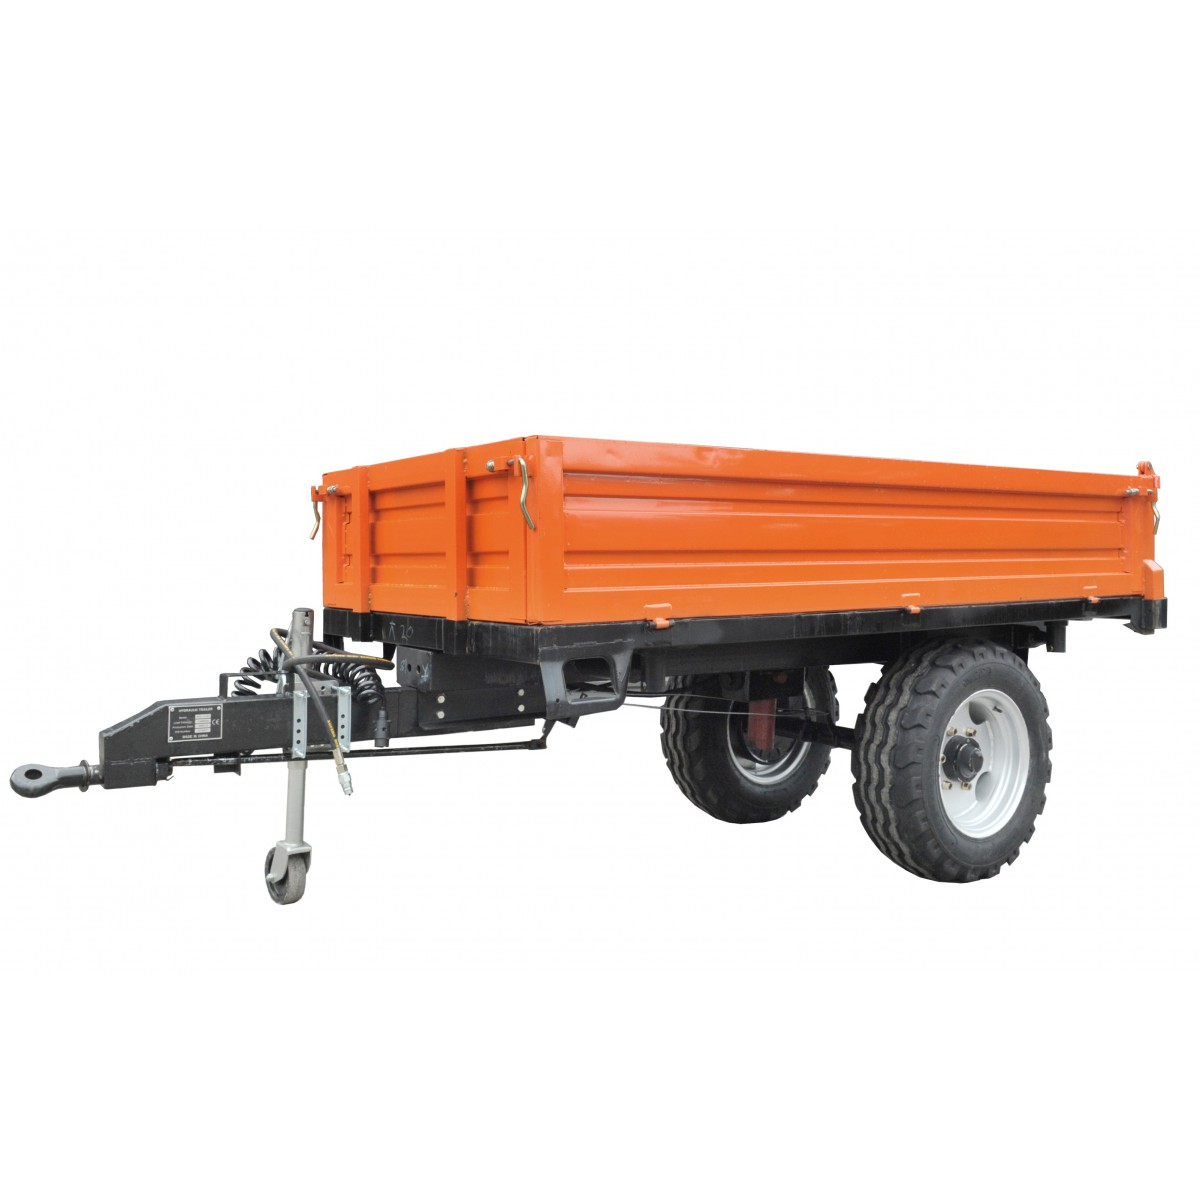 copy of Agricultural trailer 1.5T, 1 axle with a tipper 2000 x 1250 x 400 mm